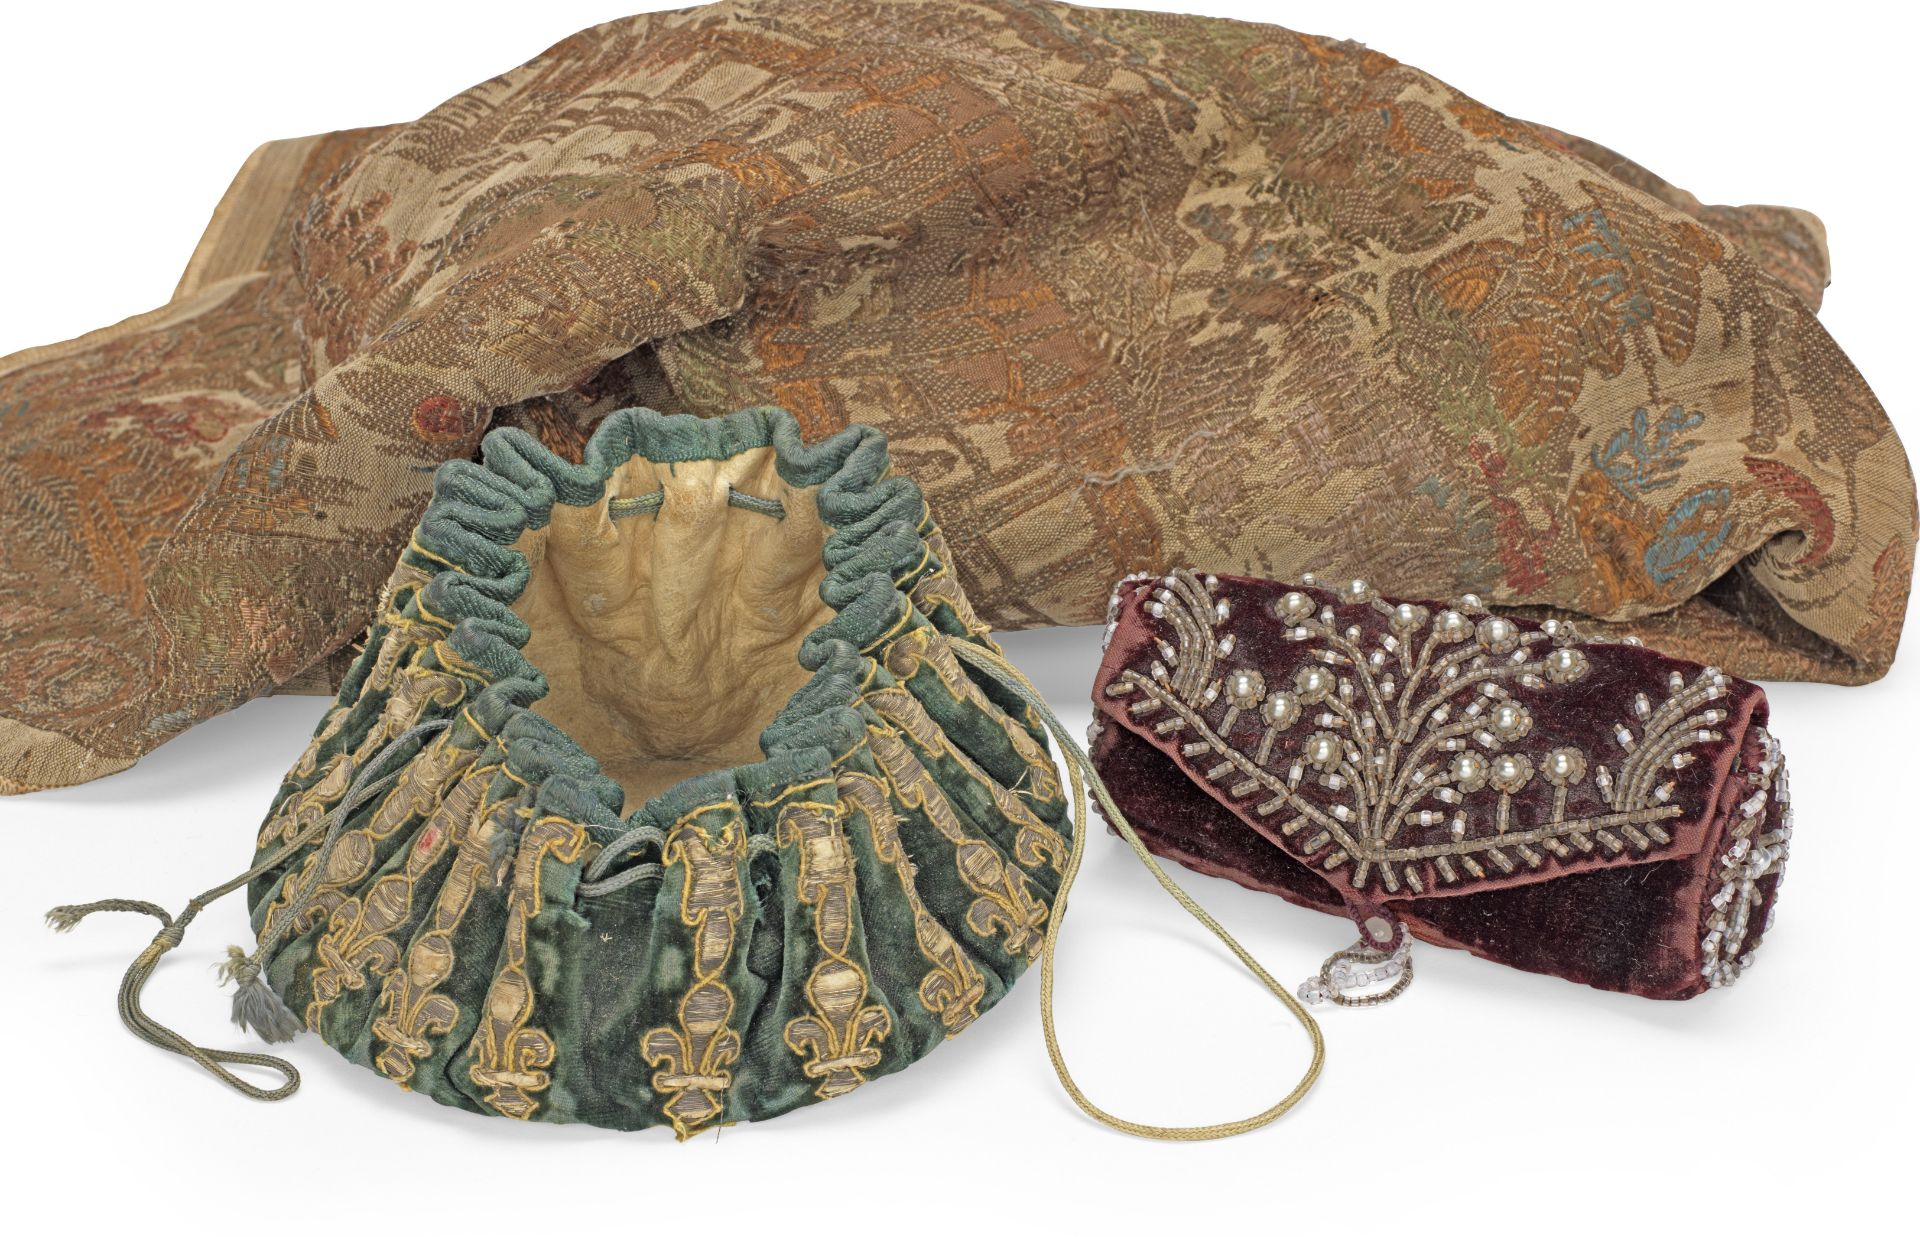 Los 533 - A late 17th century gaming purse, French or Italian, circa 1660-80